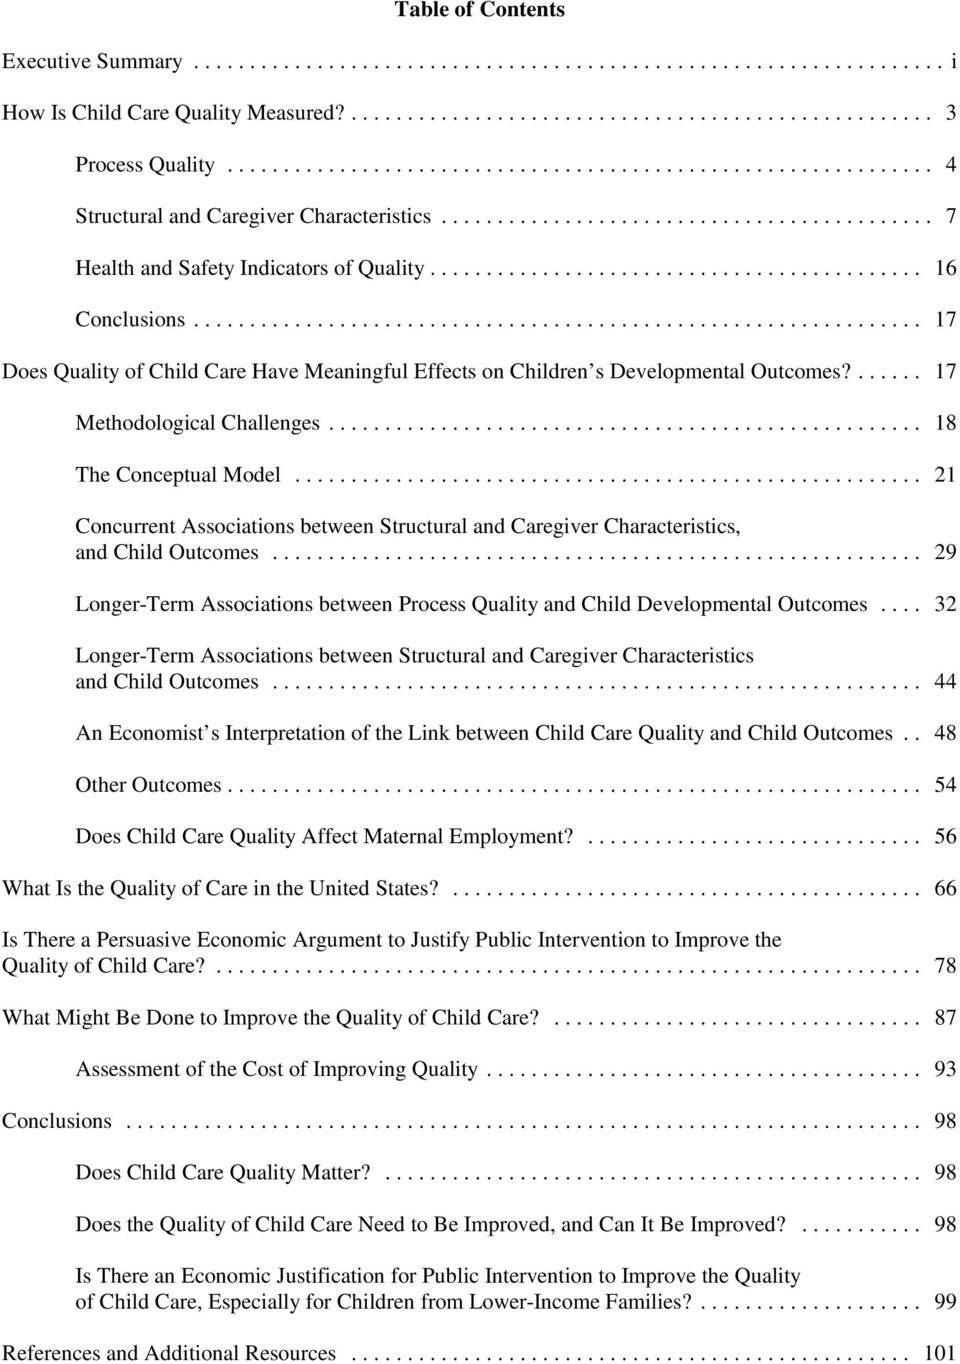 .. 21 Concurrent Associations between Structural and Caregiver Characteristics, and Child Outcomes... 29 Longer-Term Associations between Process Quality and Child Developmental Outcomes.